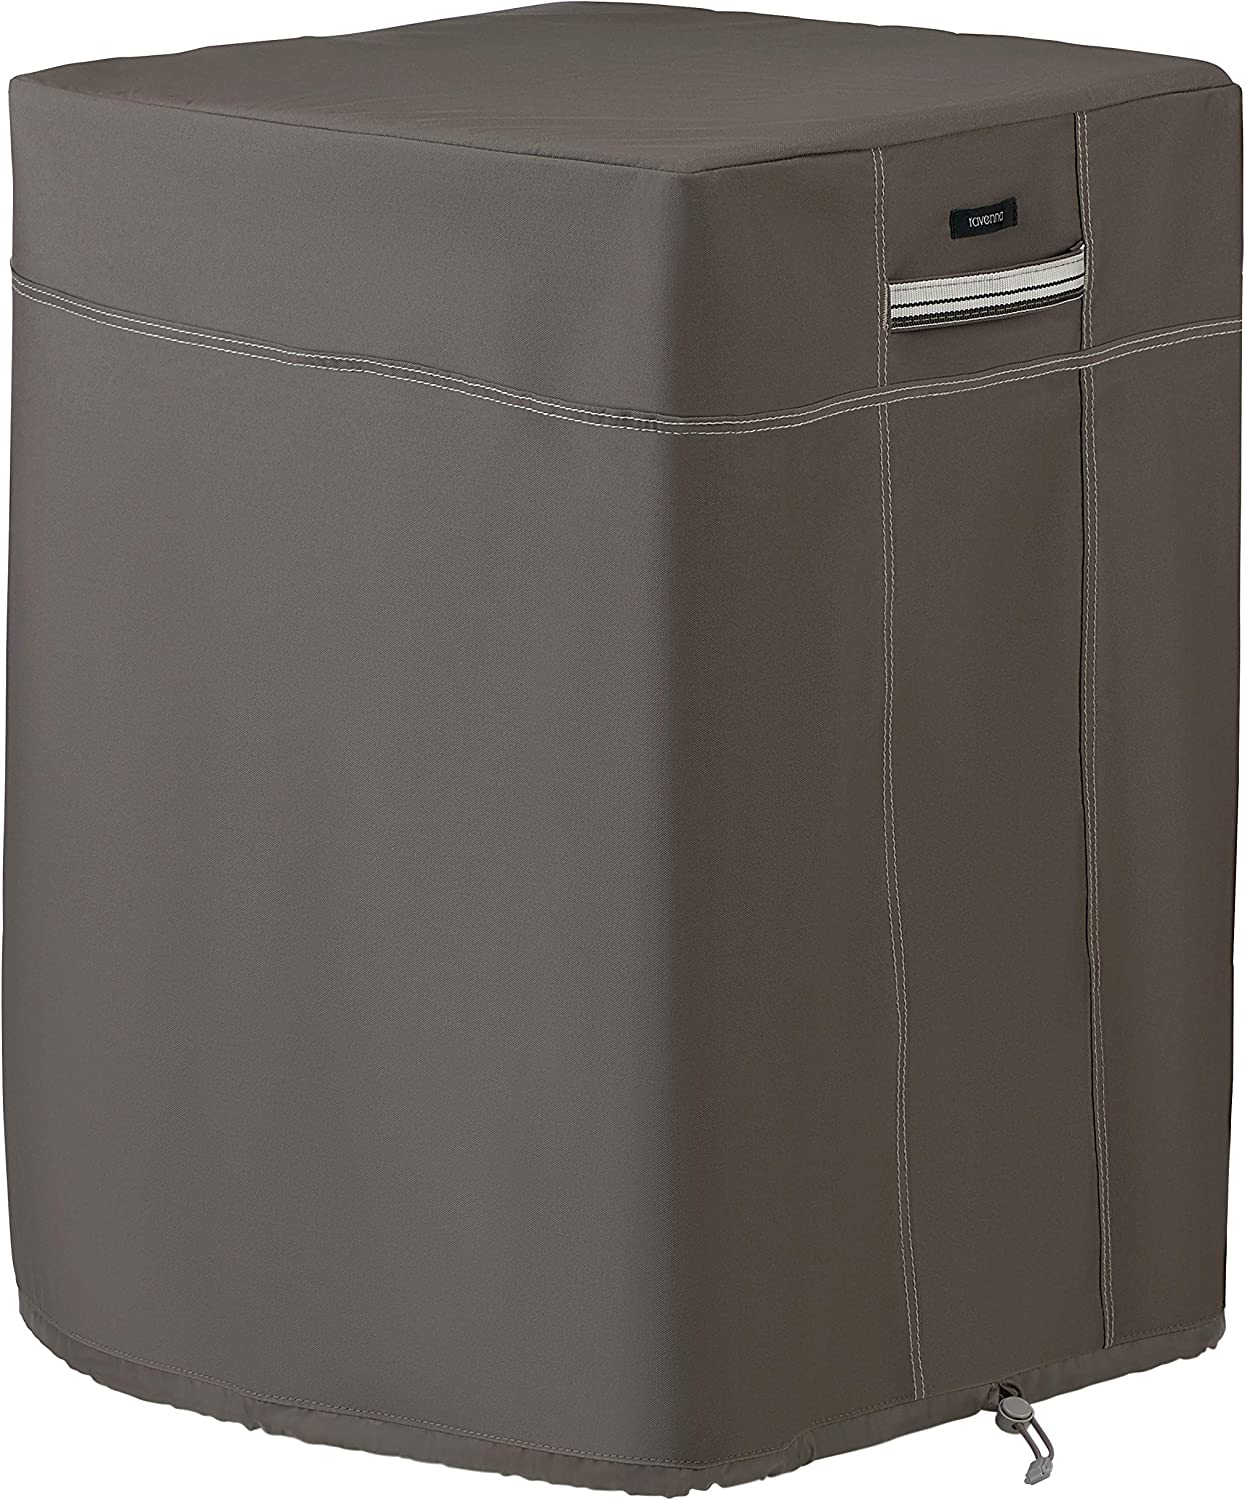 Classic Accessories Ravenna Water-Resistant 20 Inch Fire Column Cover